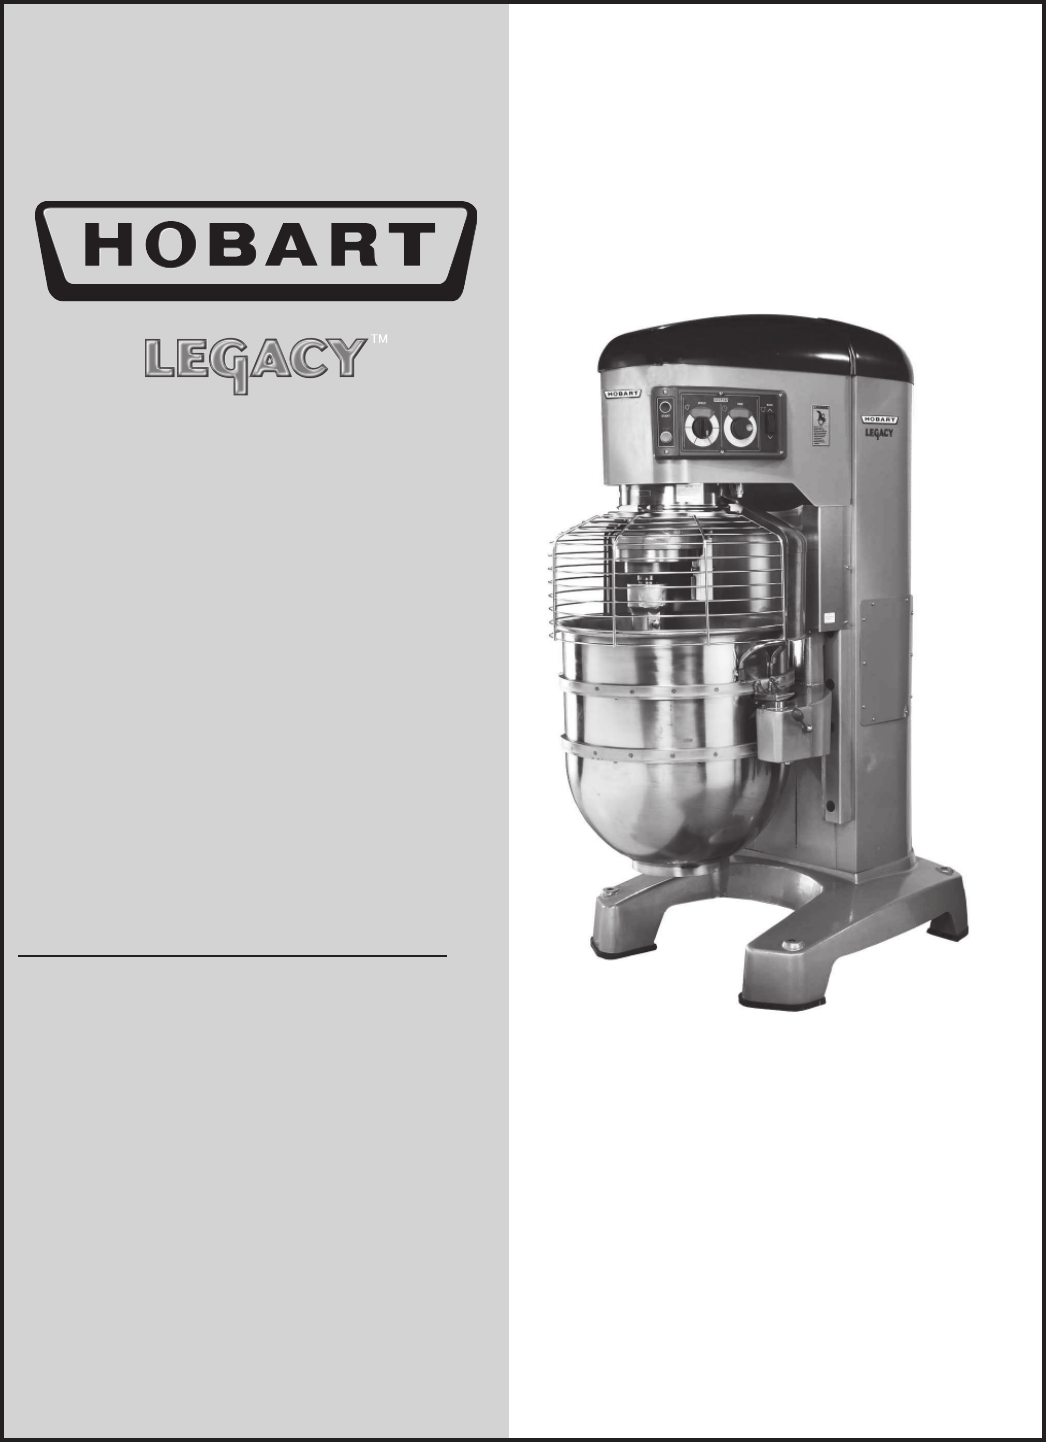 program hobart rc 250 manual atombittorrent hobart rc 250 manual